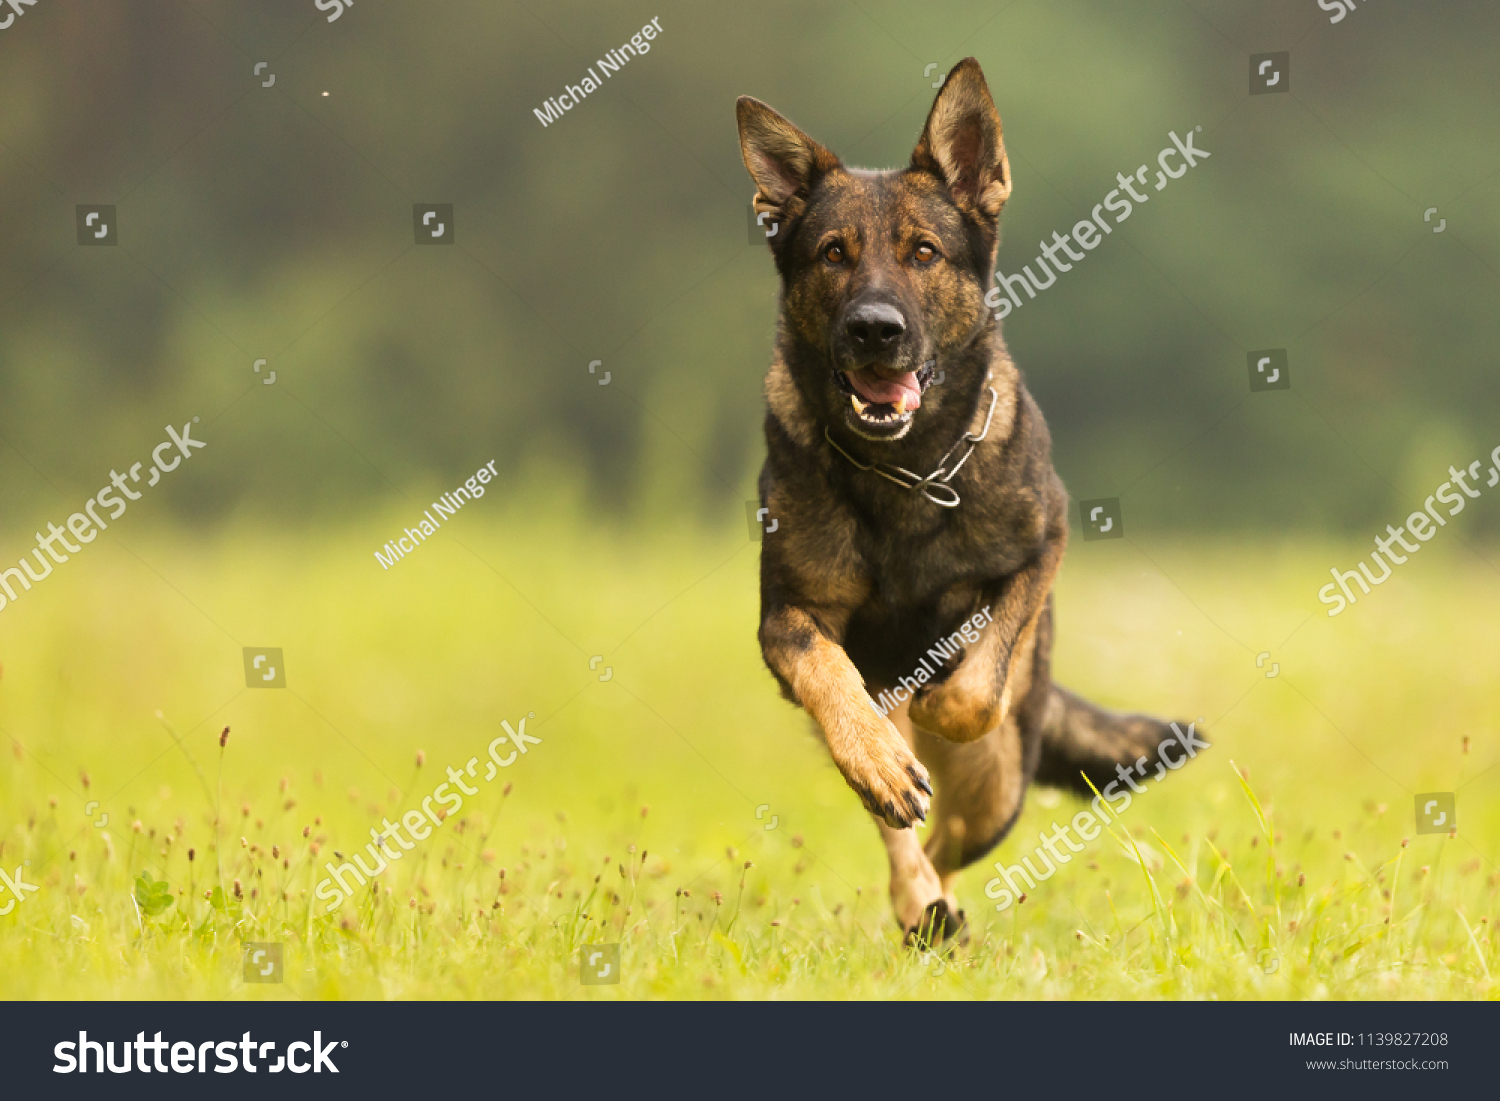 German Shepherd Dog is running close up